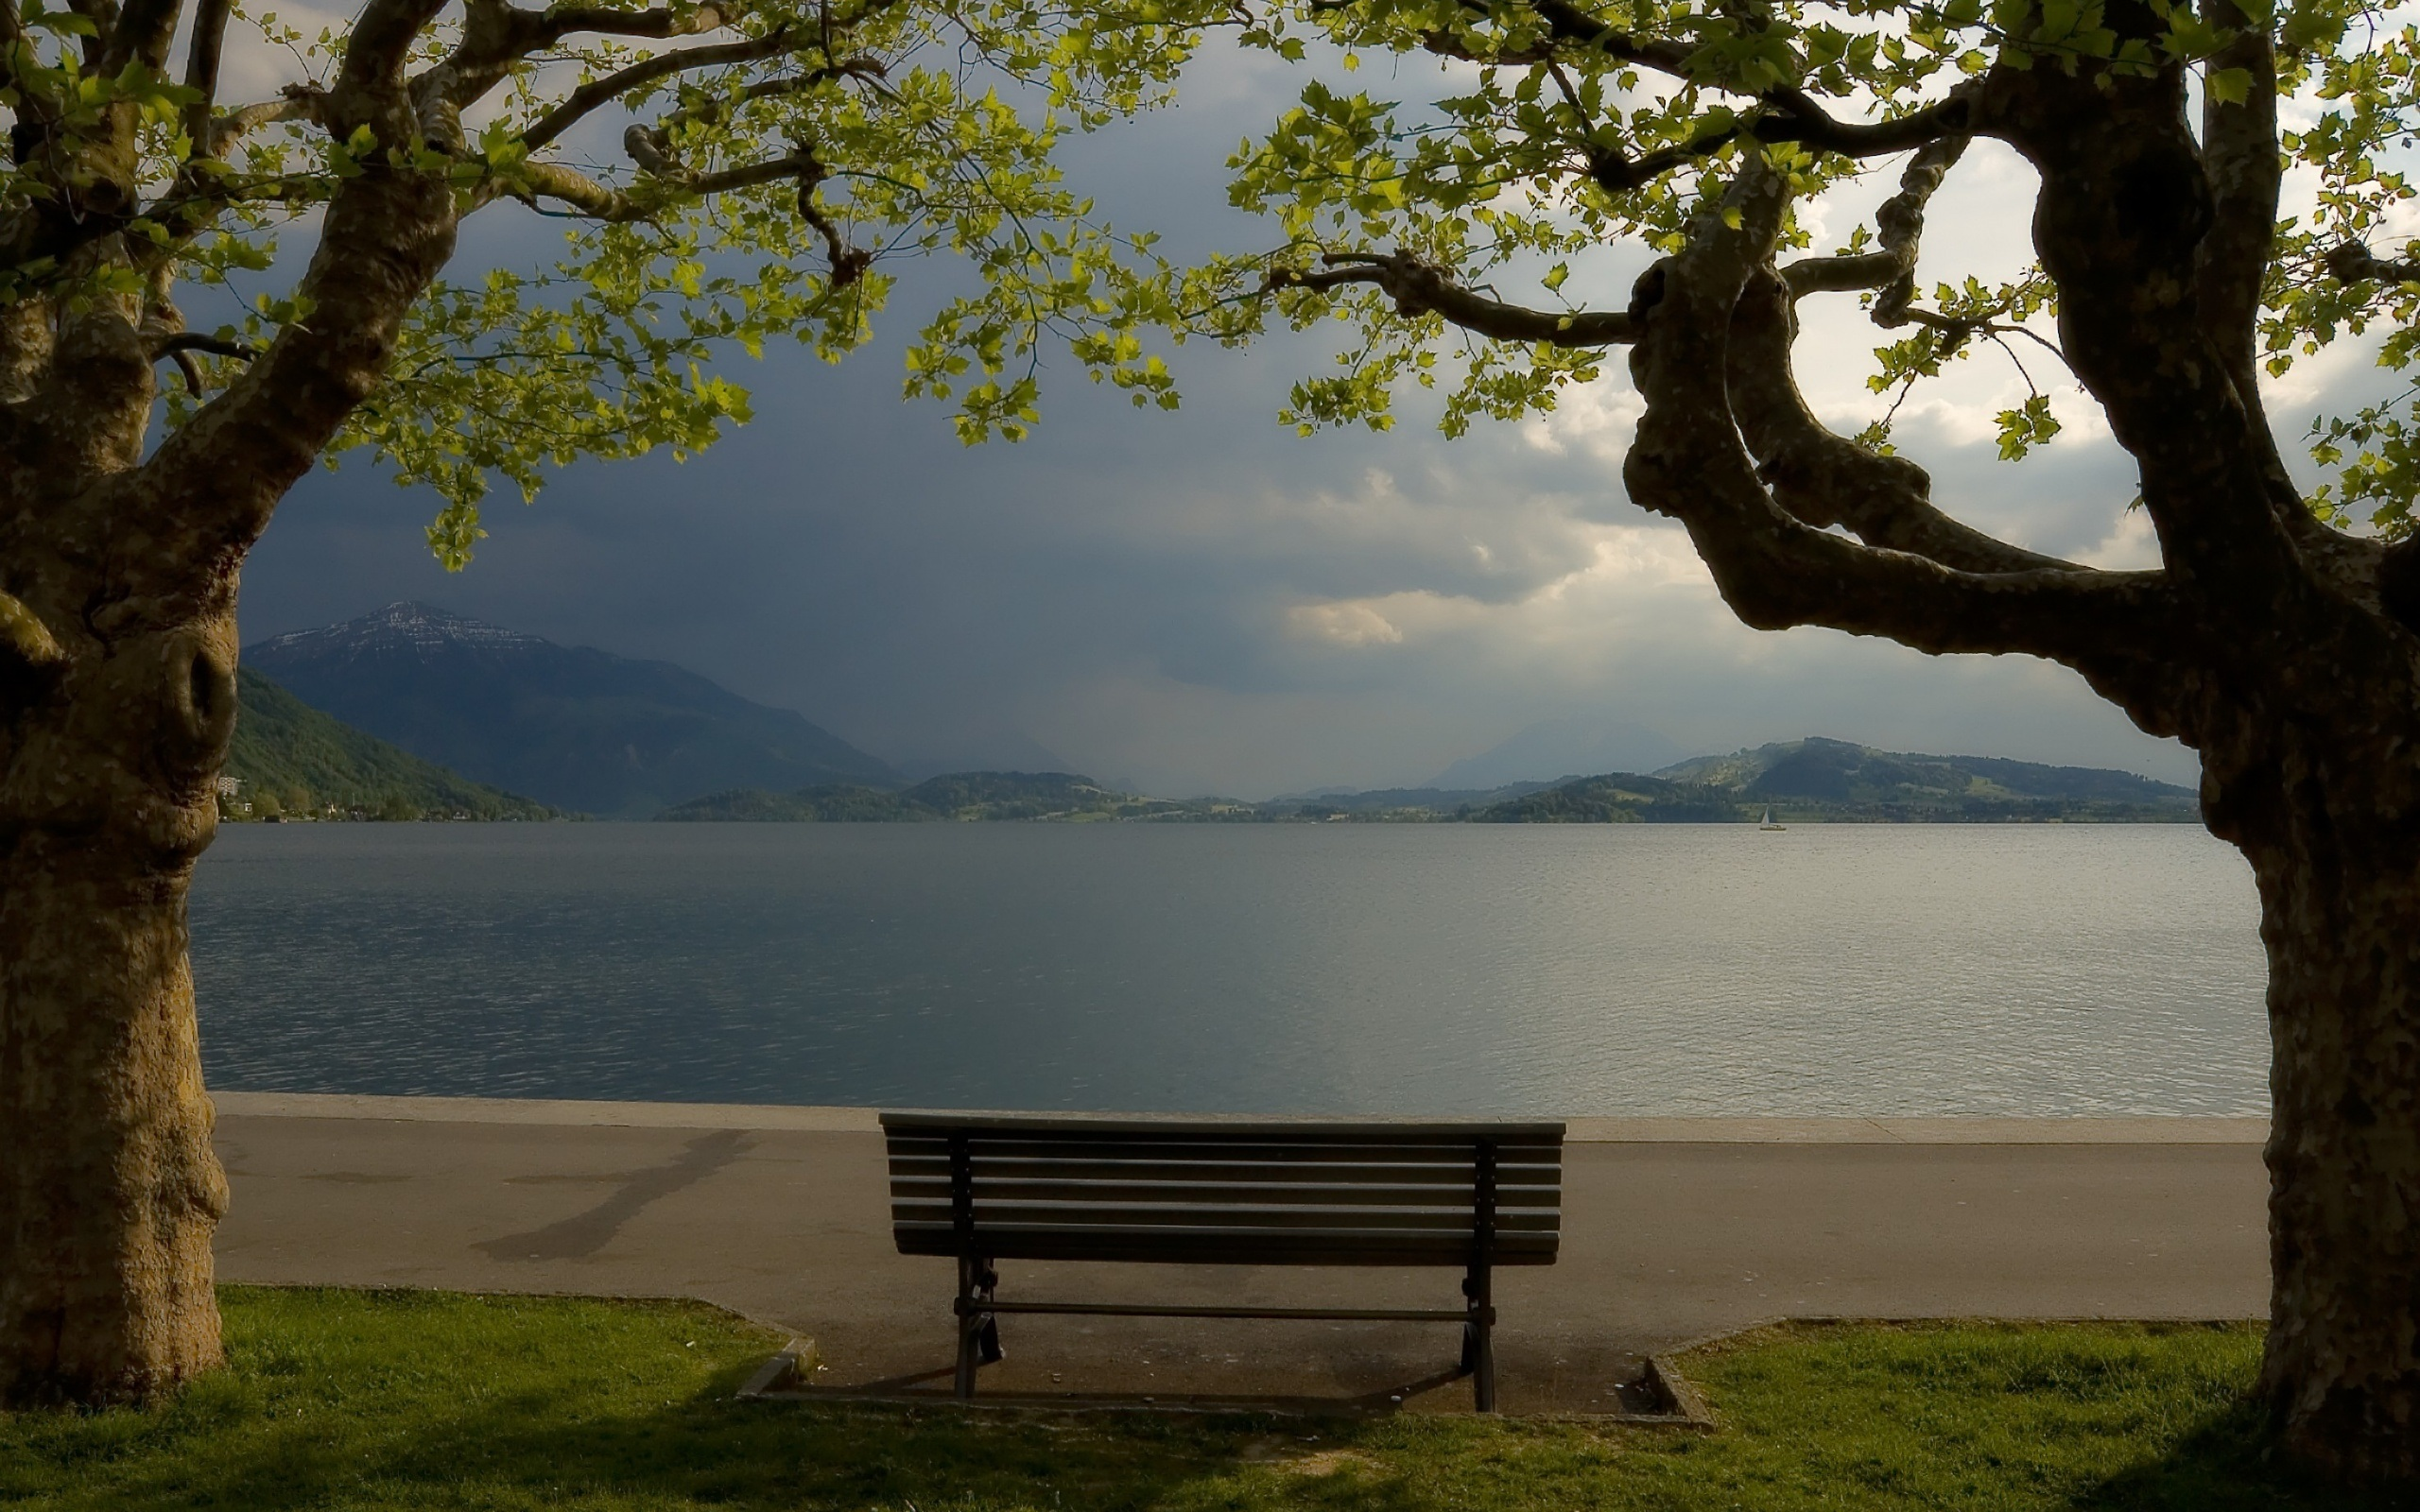 Cloudy Park Bench